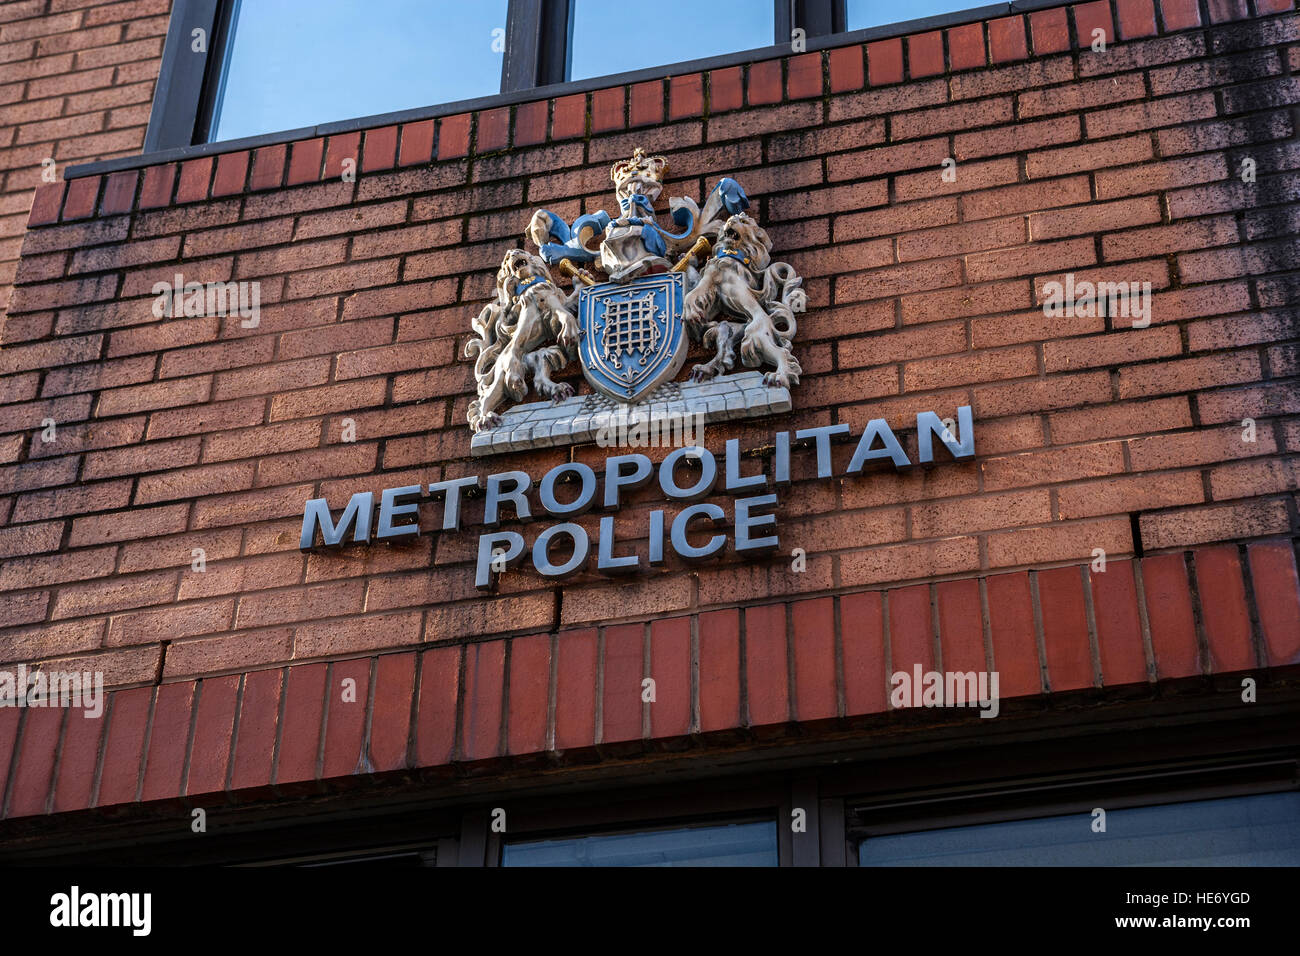 Metropolitan Police Crest on Police Station Facade - Stock Image